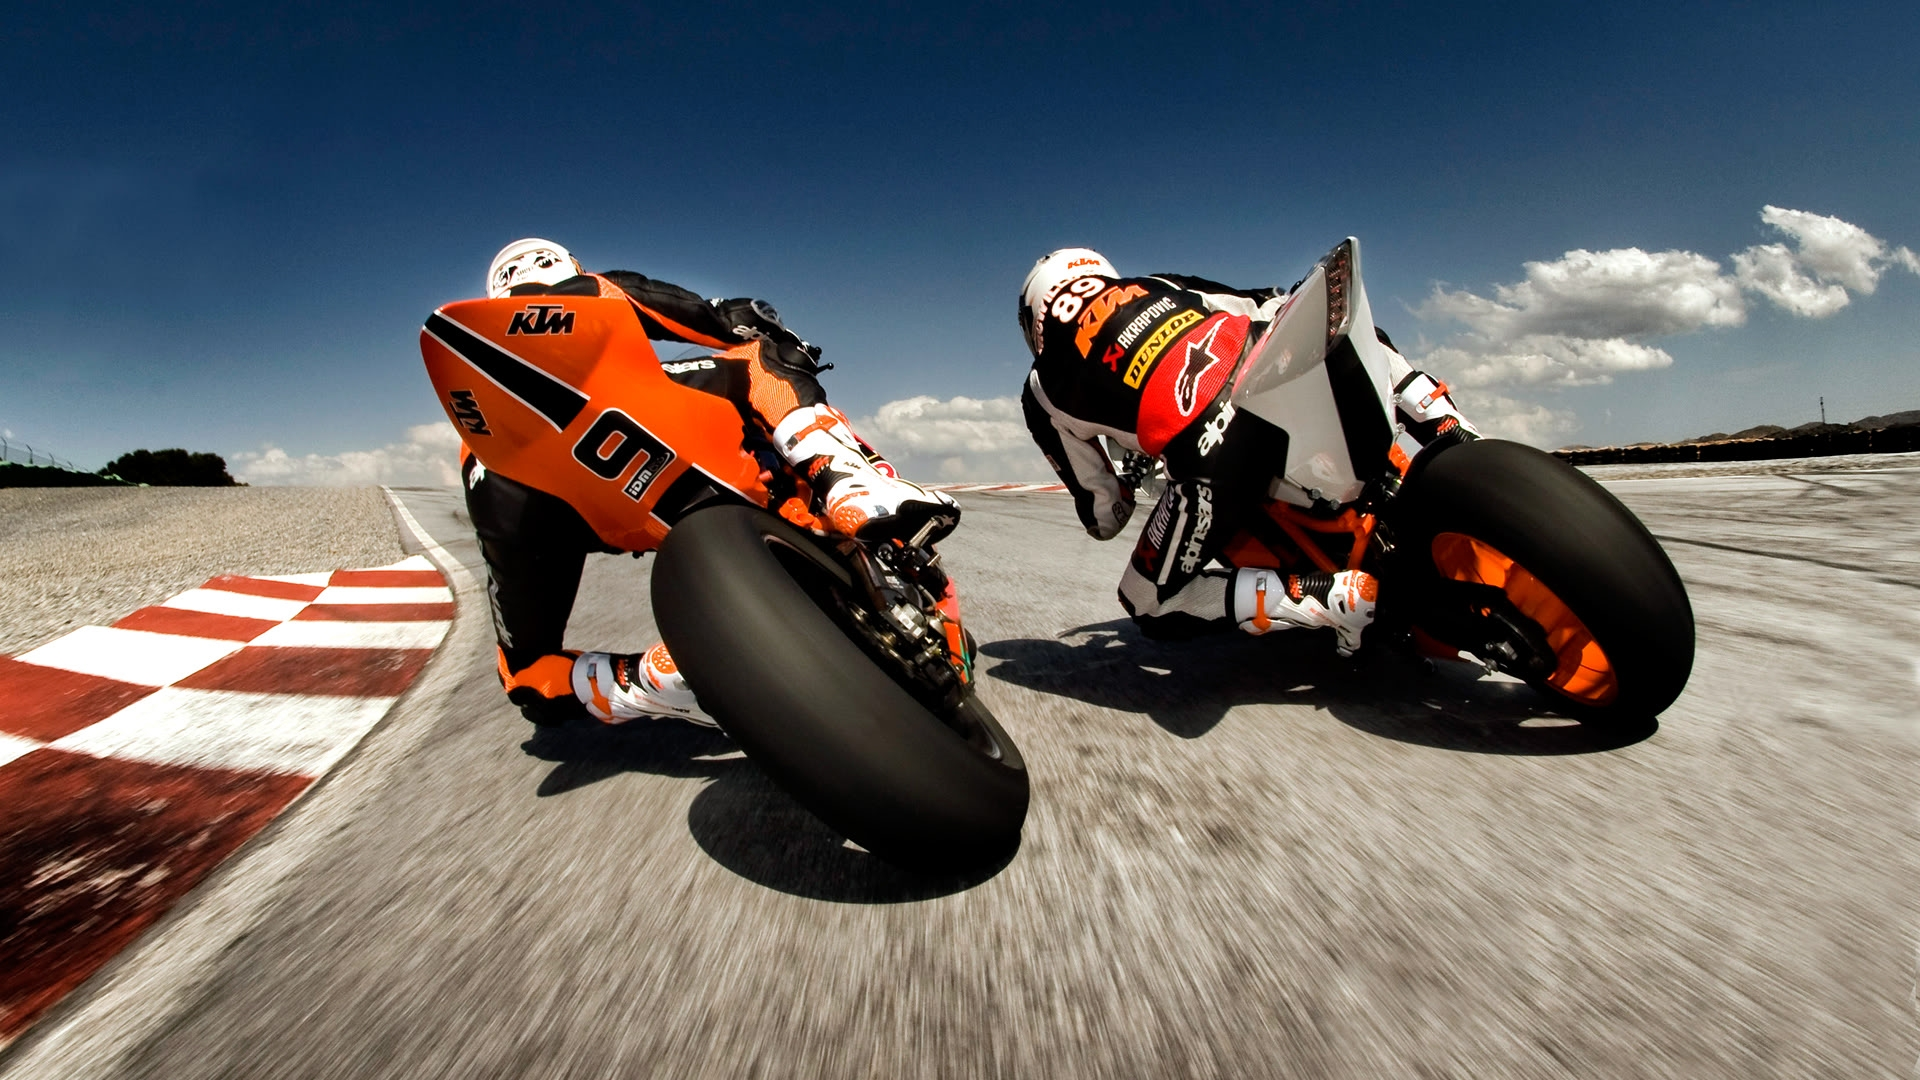 Valentino rossi on track hd bikes 4k wallpapers images valentino rossi on track voltagebd Images